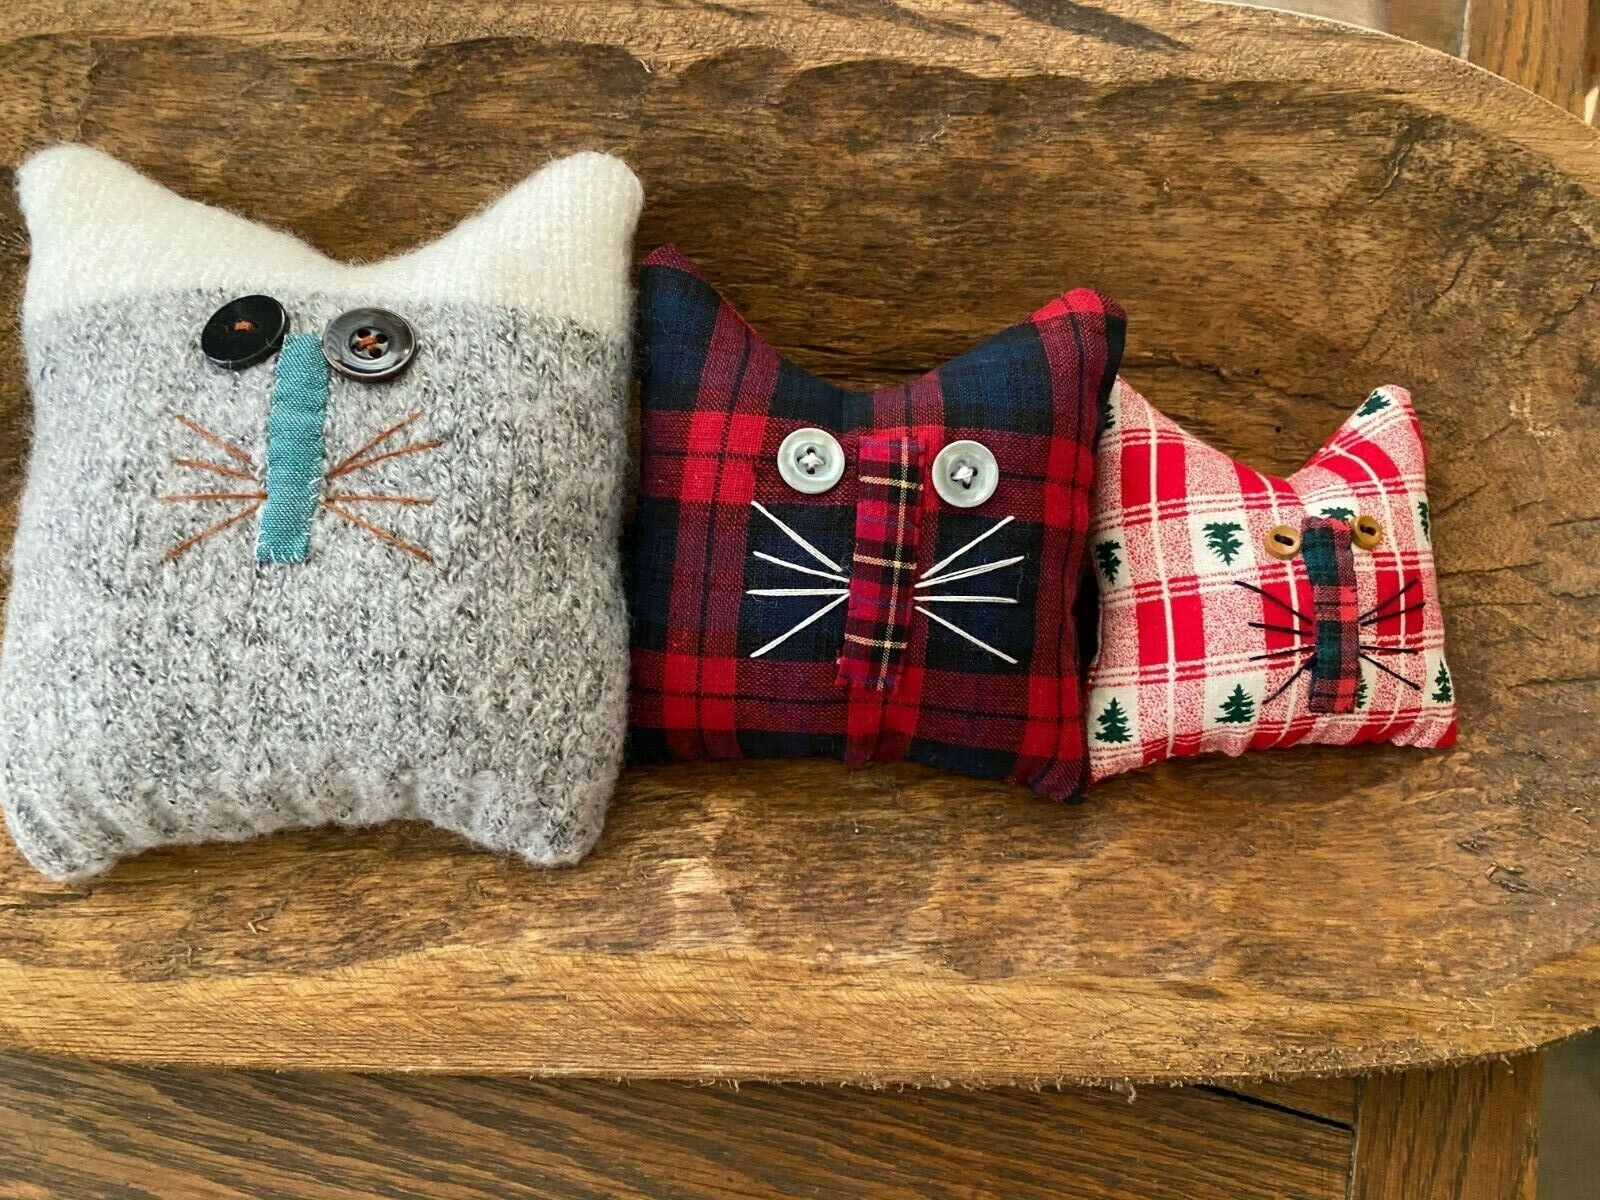 Primitive Old Home Cats Bowl Fillers Set Of 3 Christmas Winter - $4.99